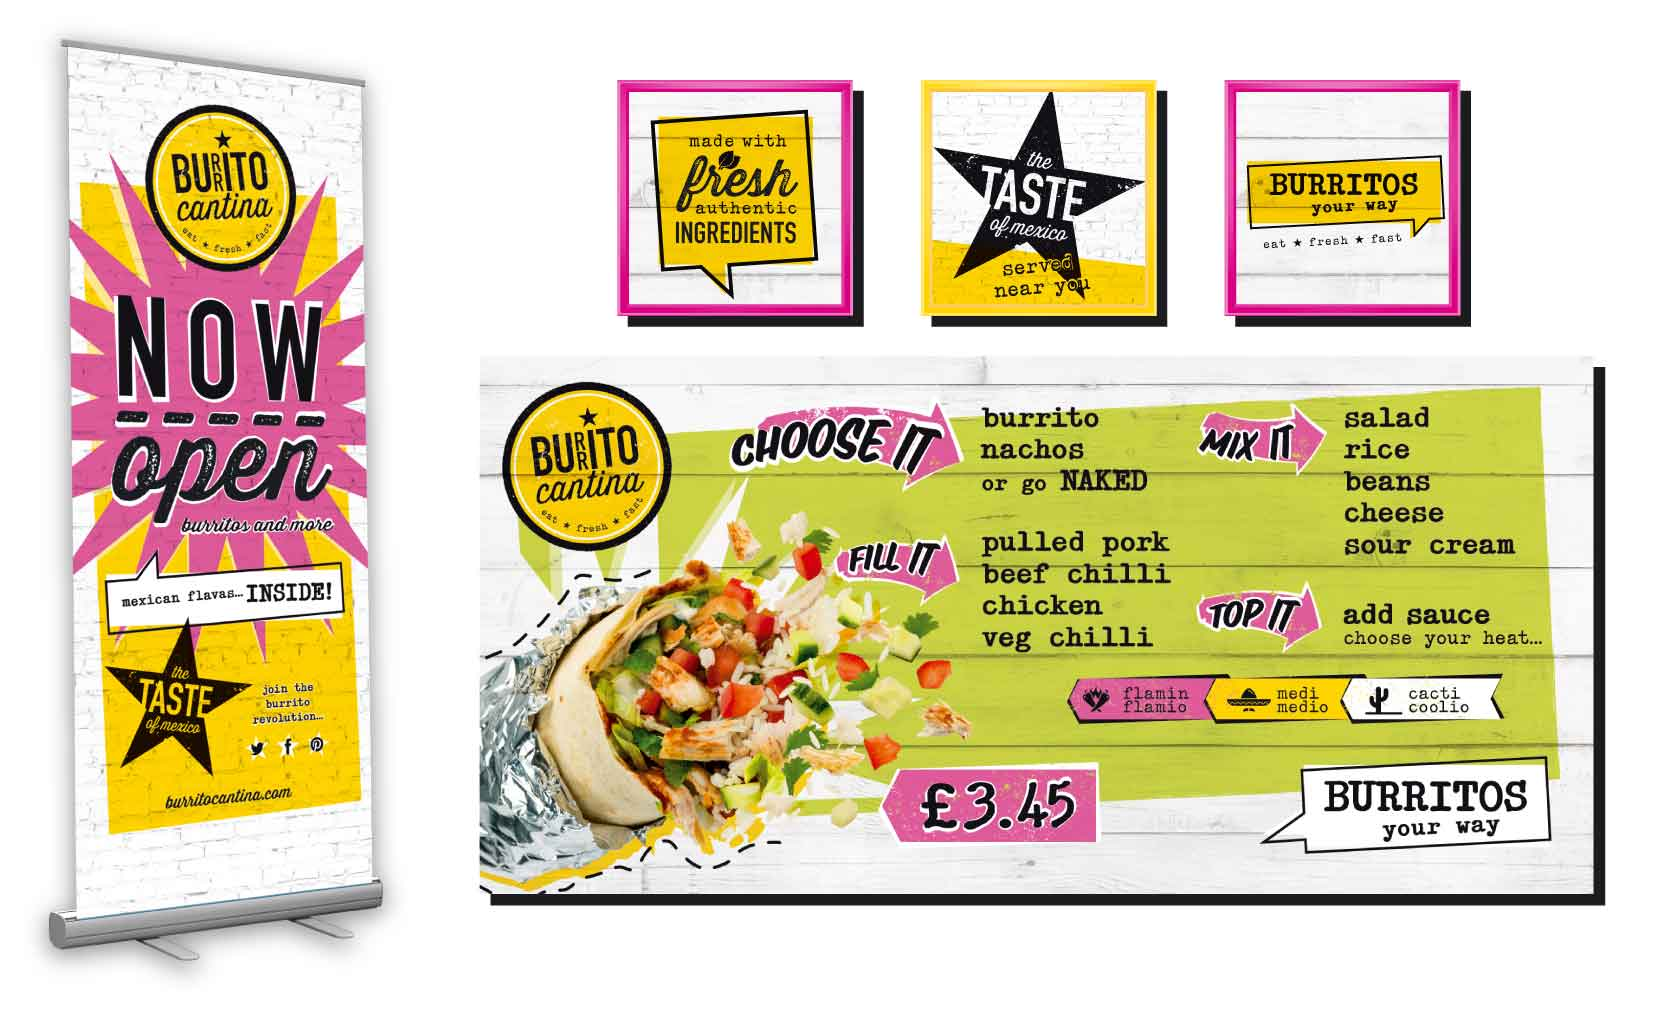 internal pos signage for burrito cantina brand